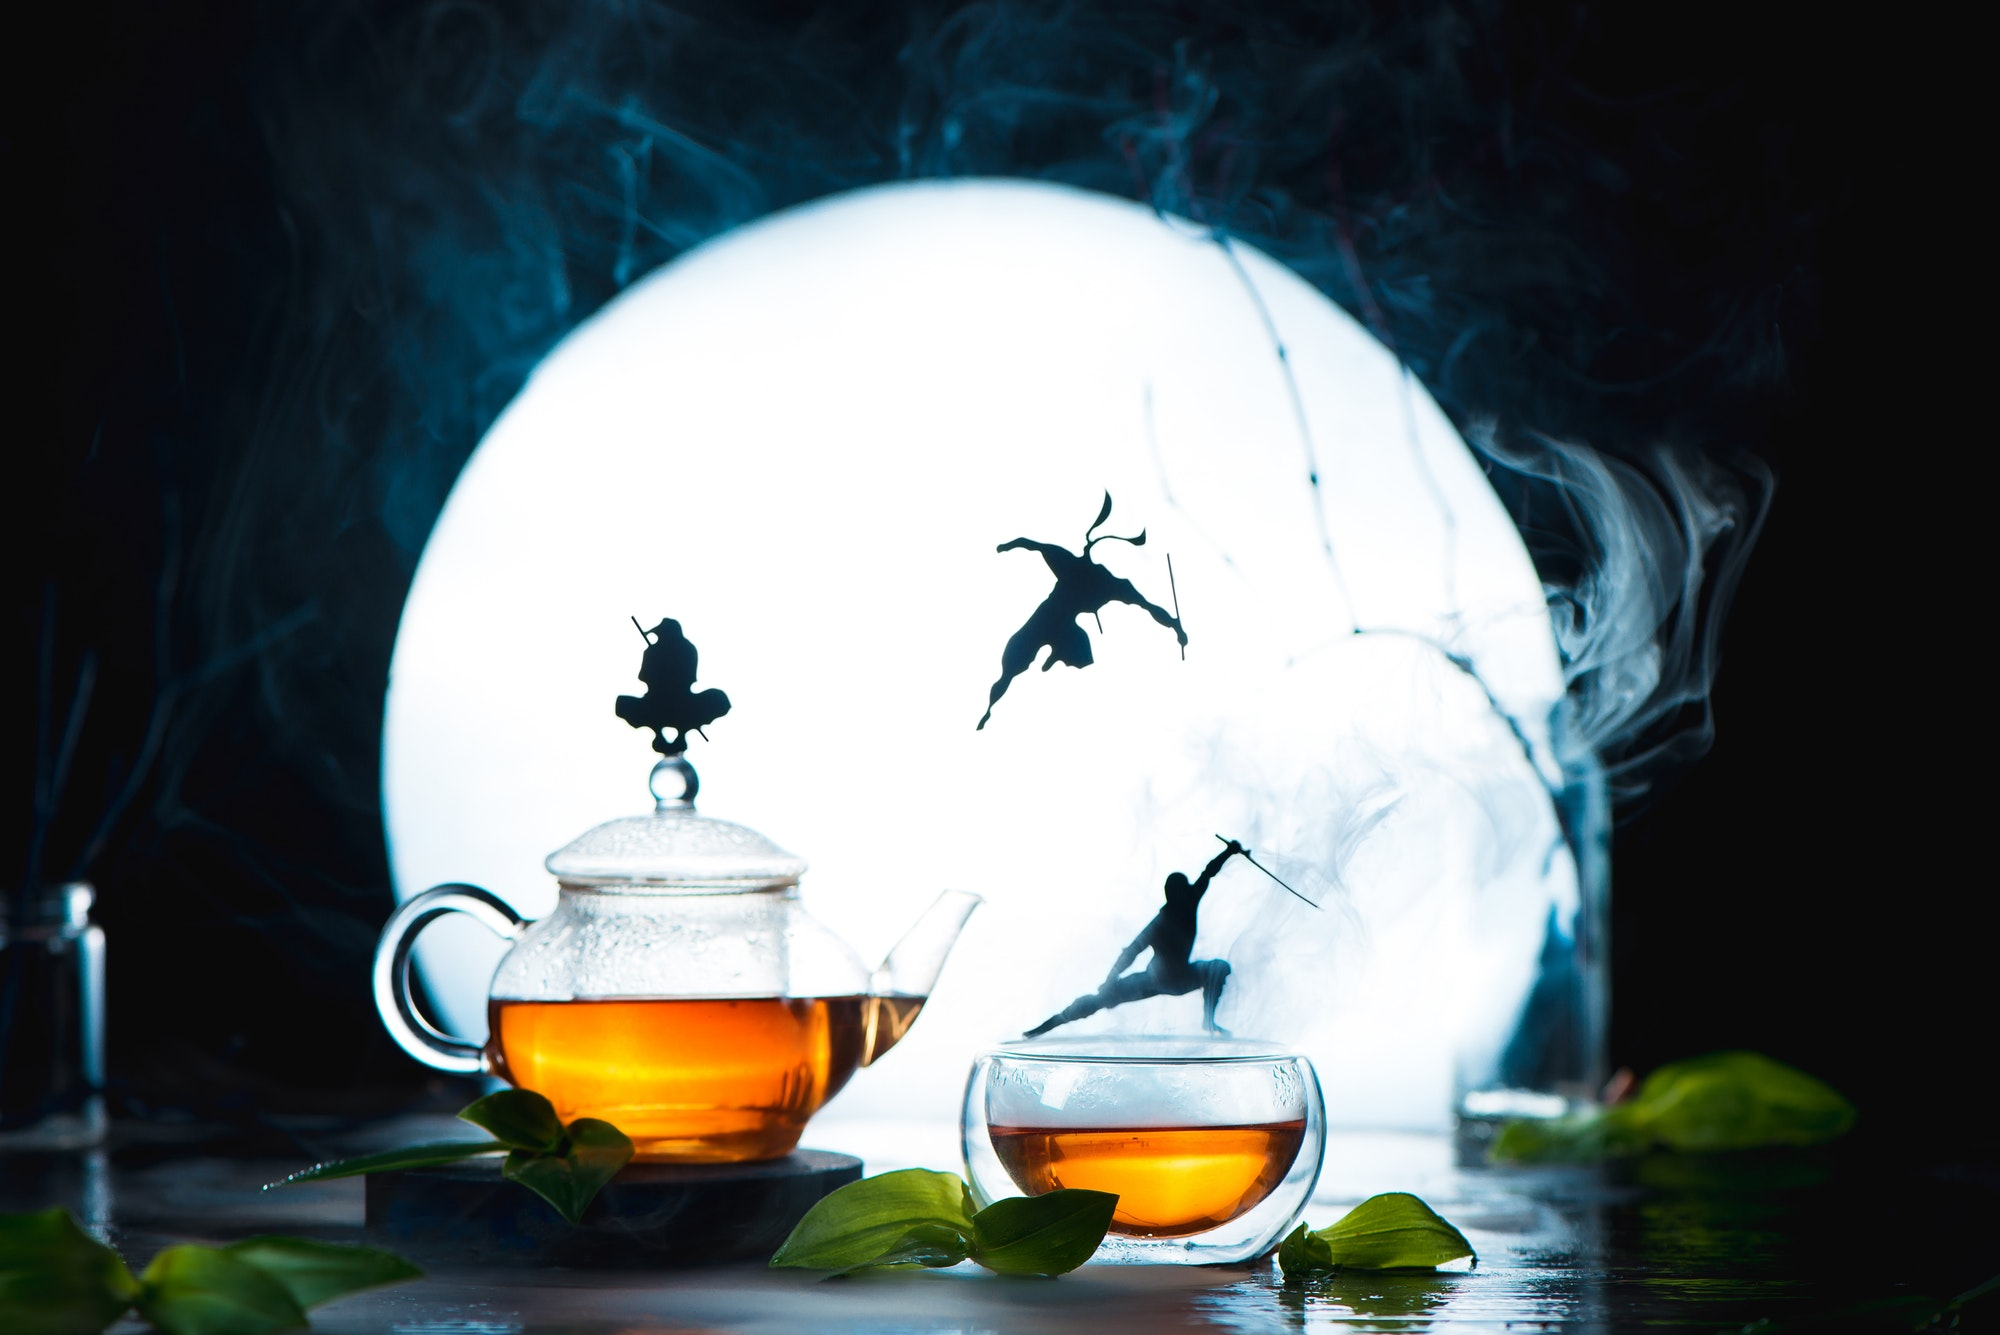 Conceptual tea photography with ninja silhouettes on tea cups. Creative hot drink header with full